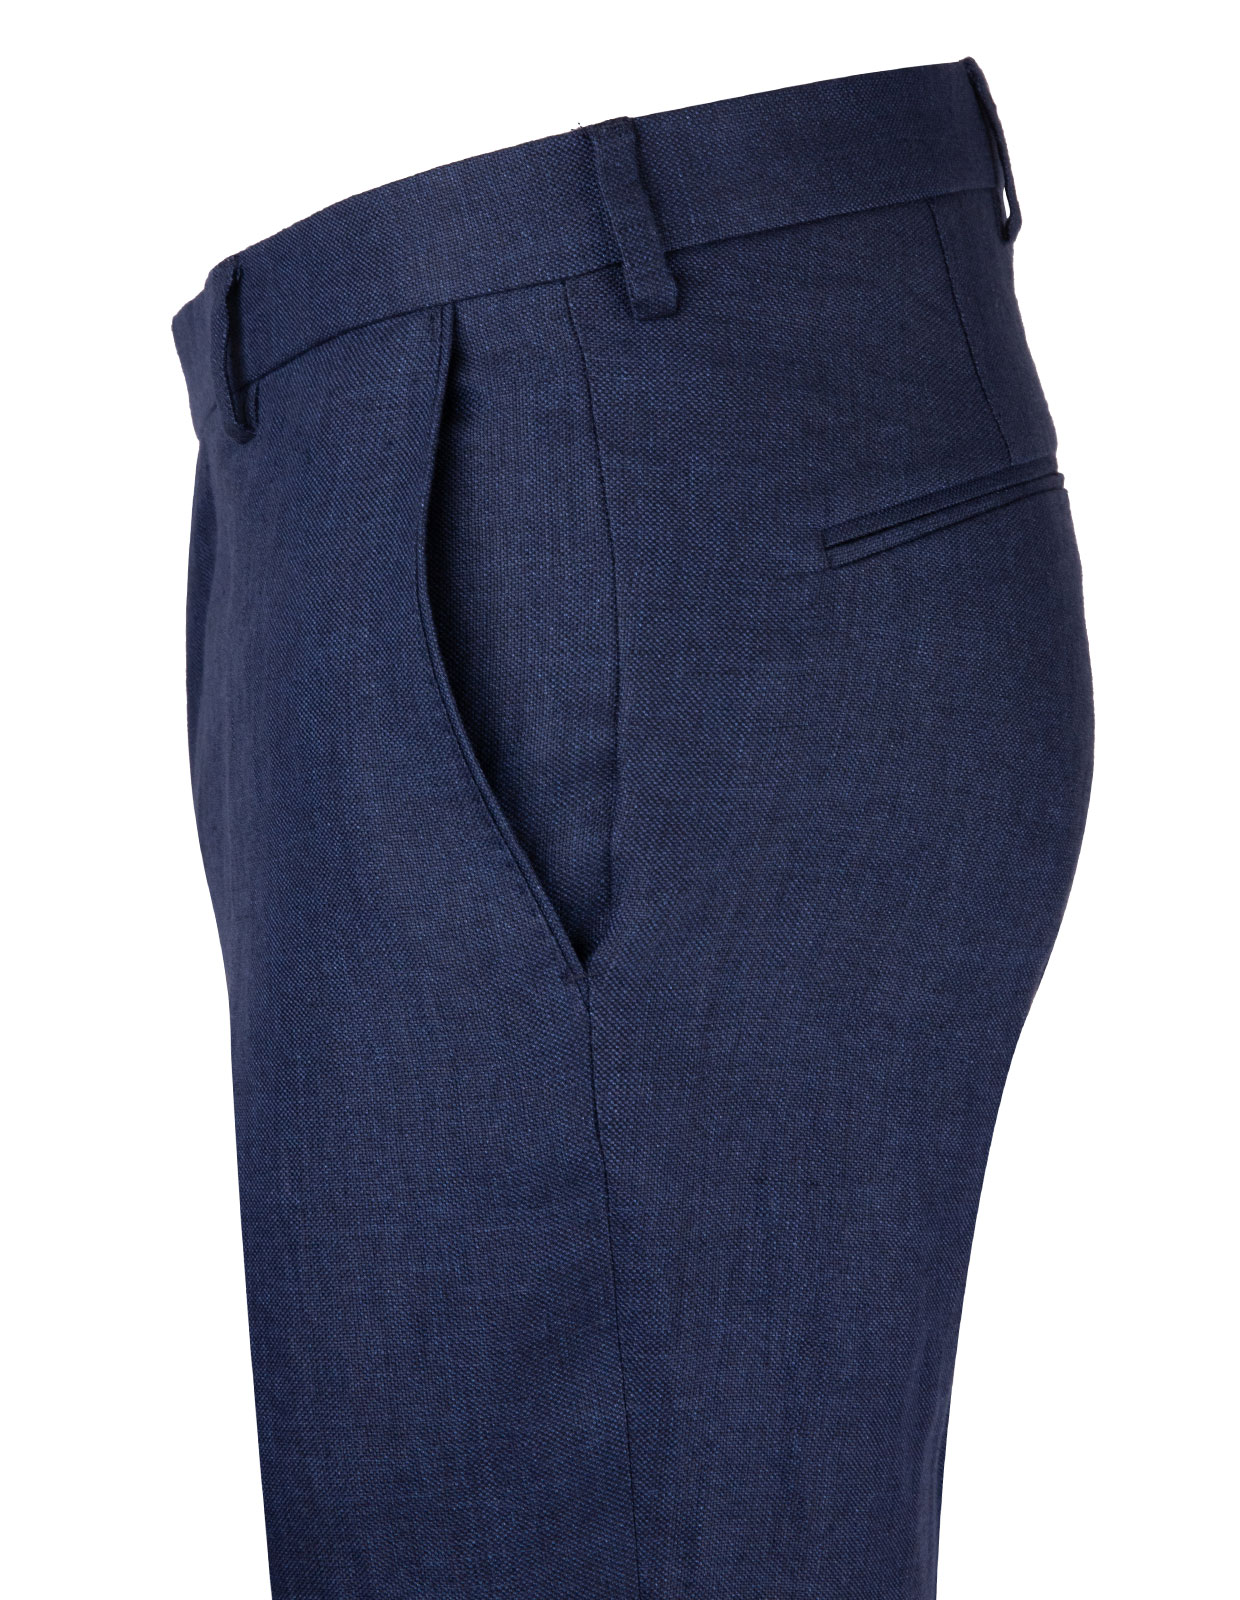 Diego Regular Linen Trouser Mix & Match Navy Stl 148